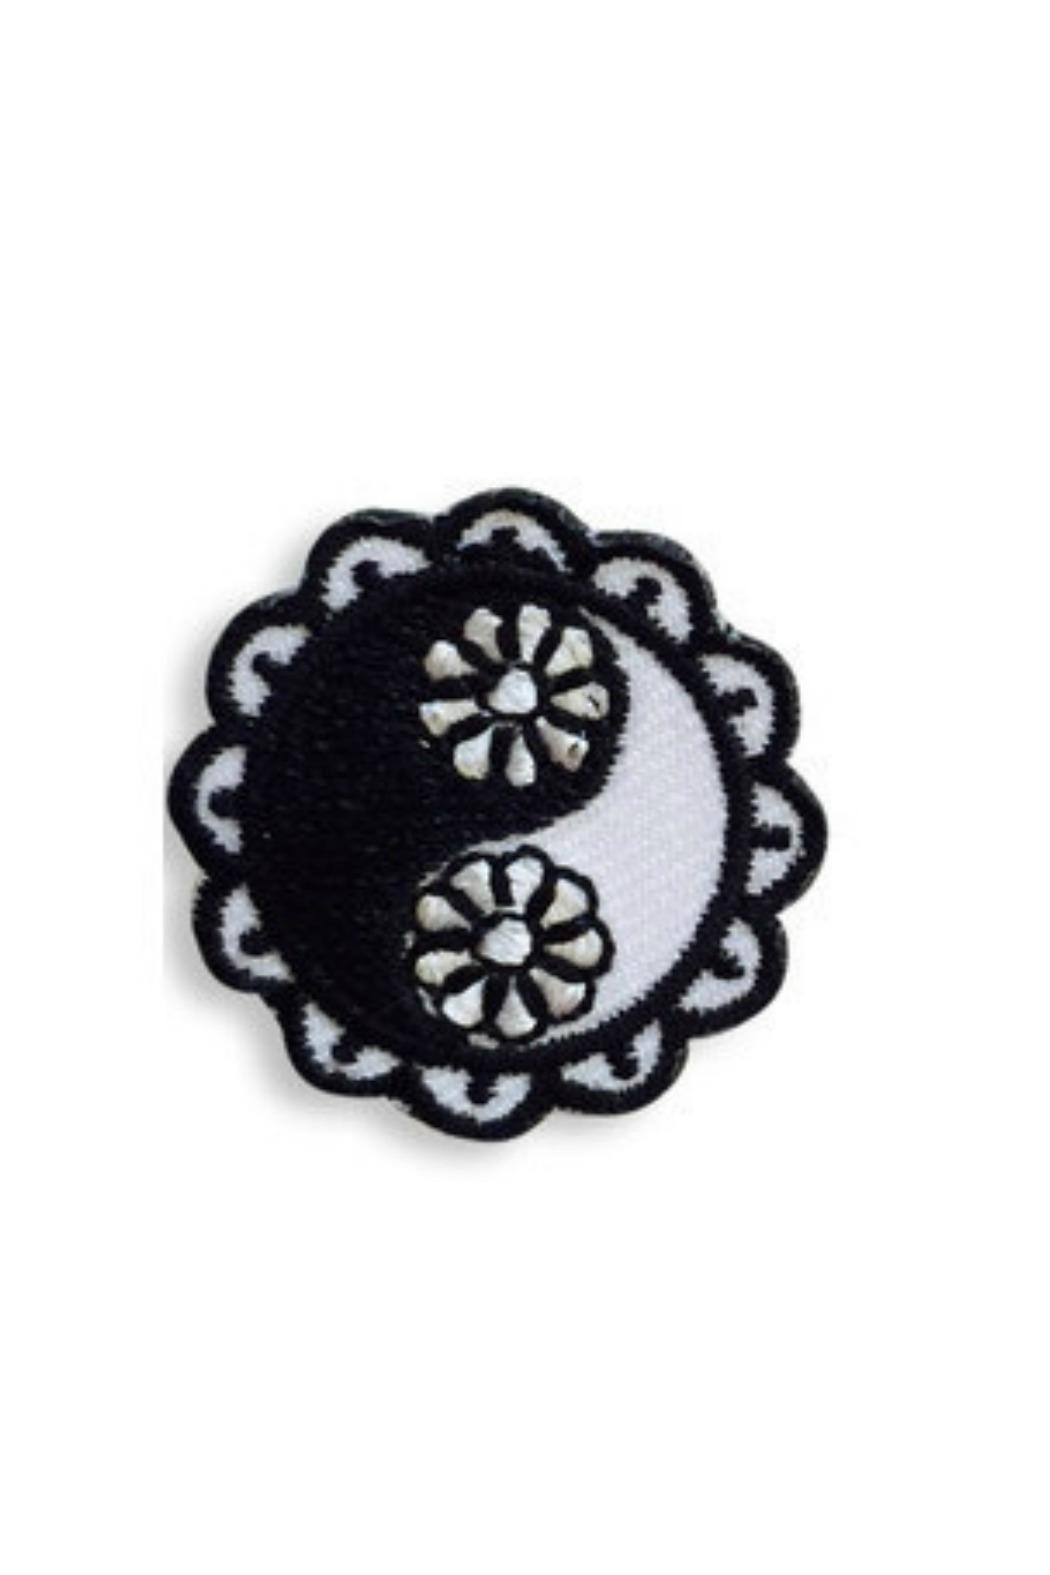 Hipstapatch Yin Yang Patch From New York By Lets Bag It Shoptiques